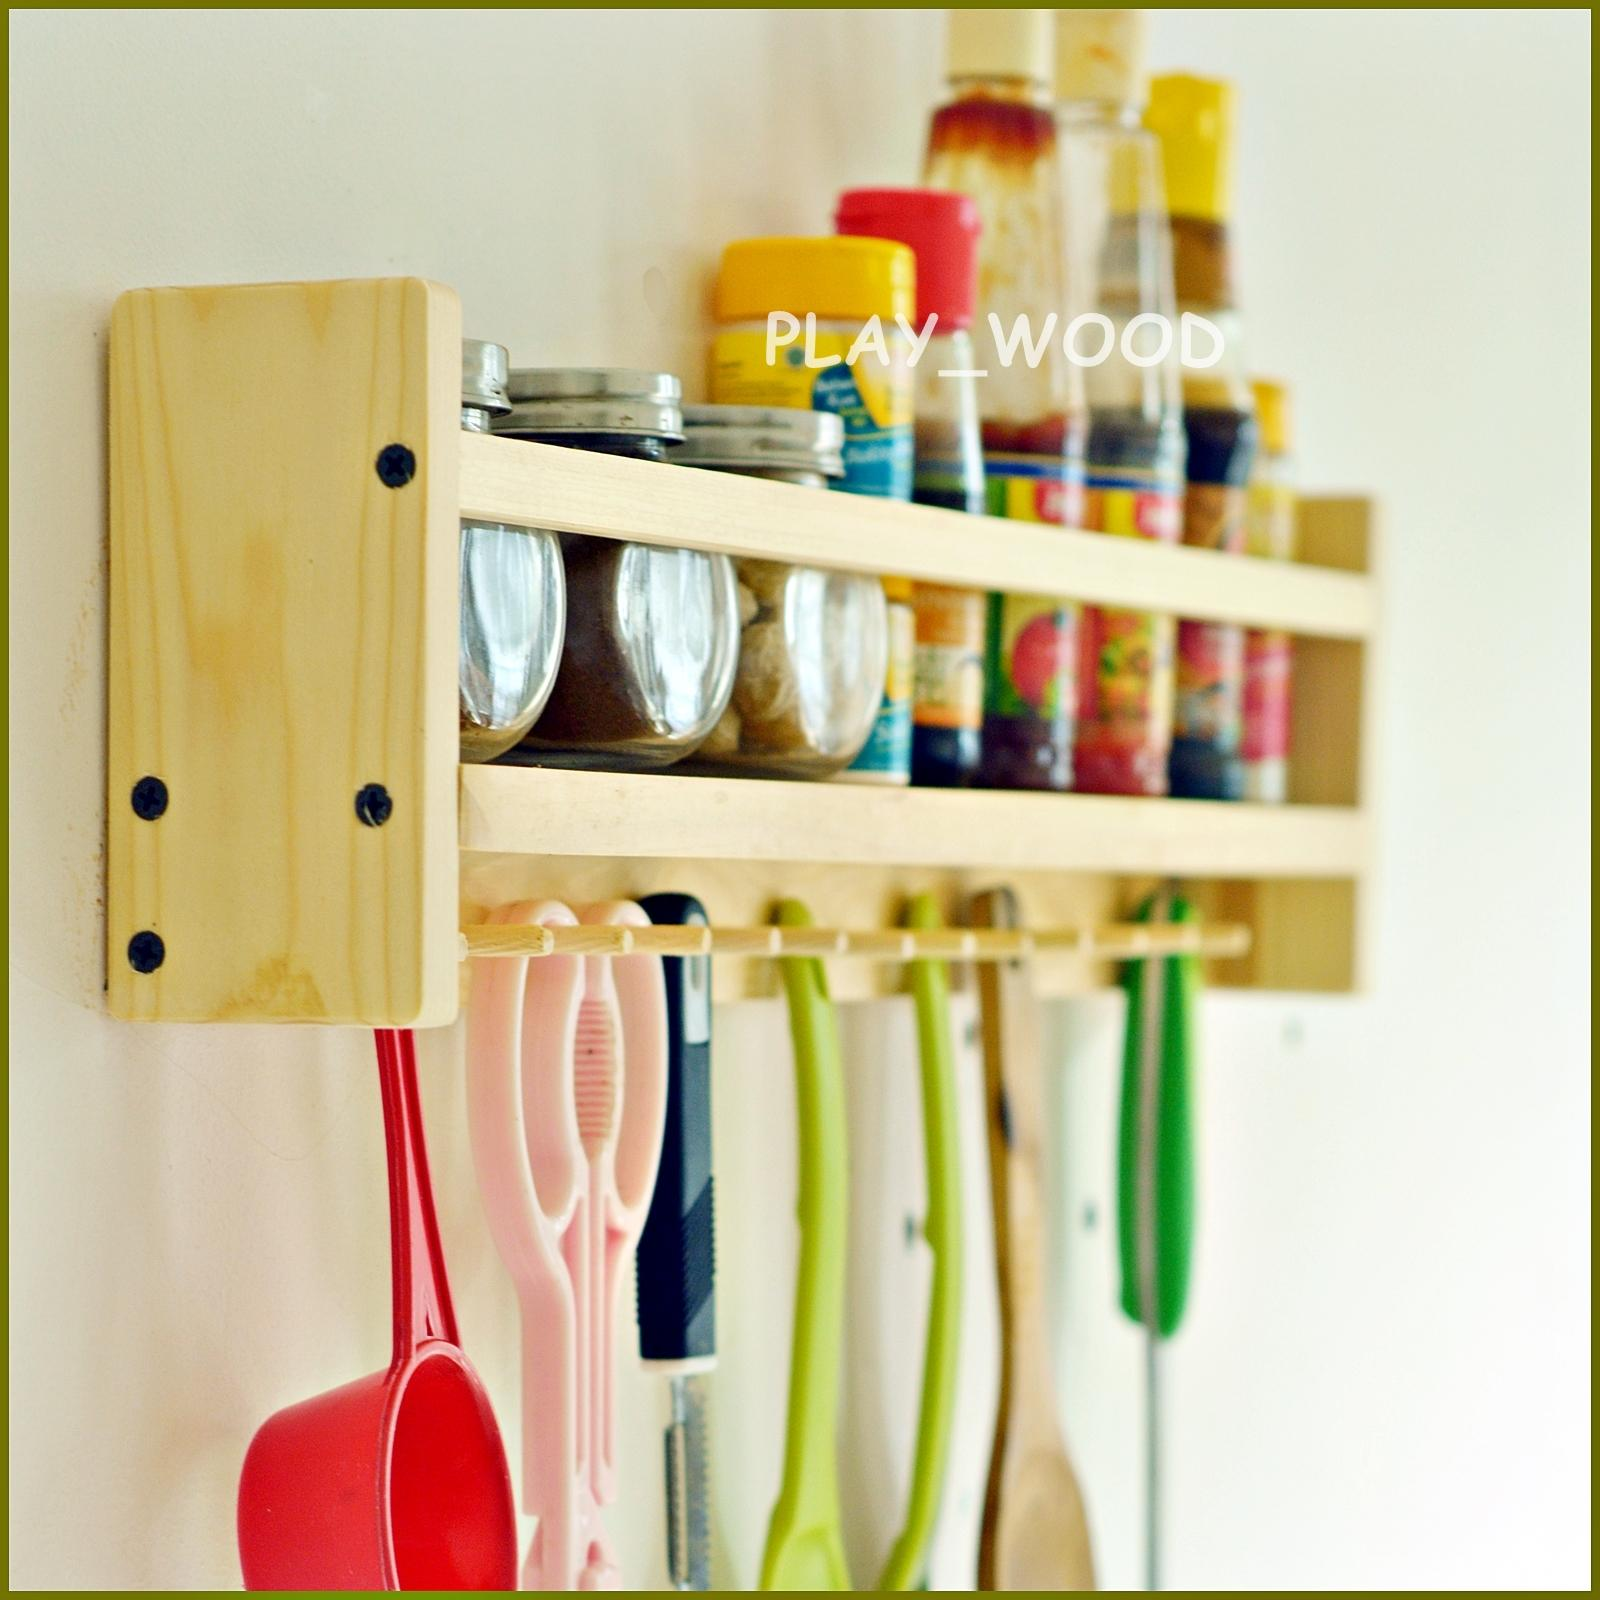 Rak Bumbu Dapur Kayu By Play_wood.